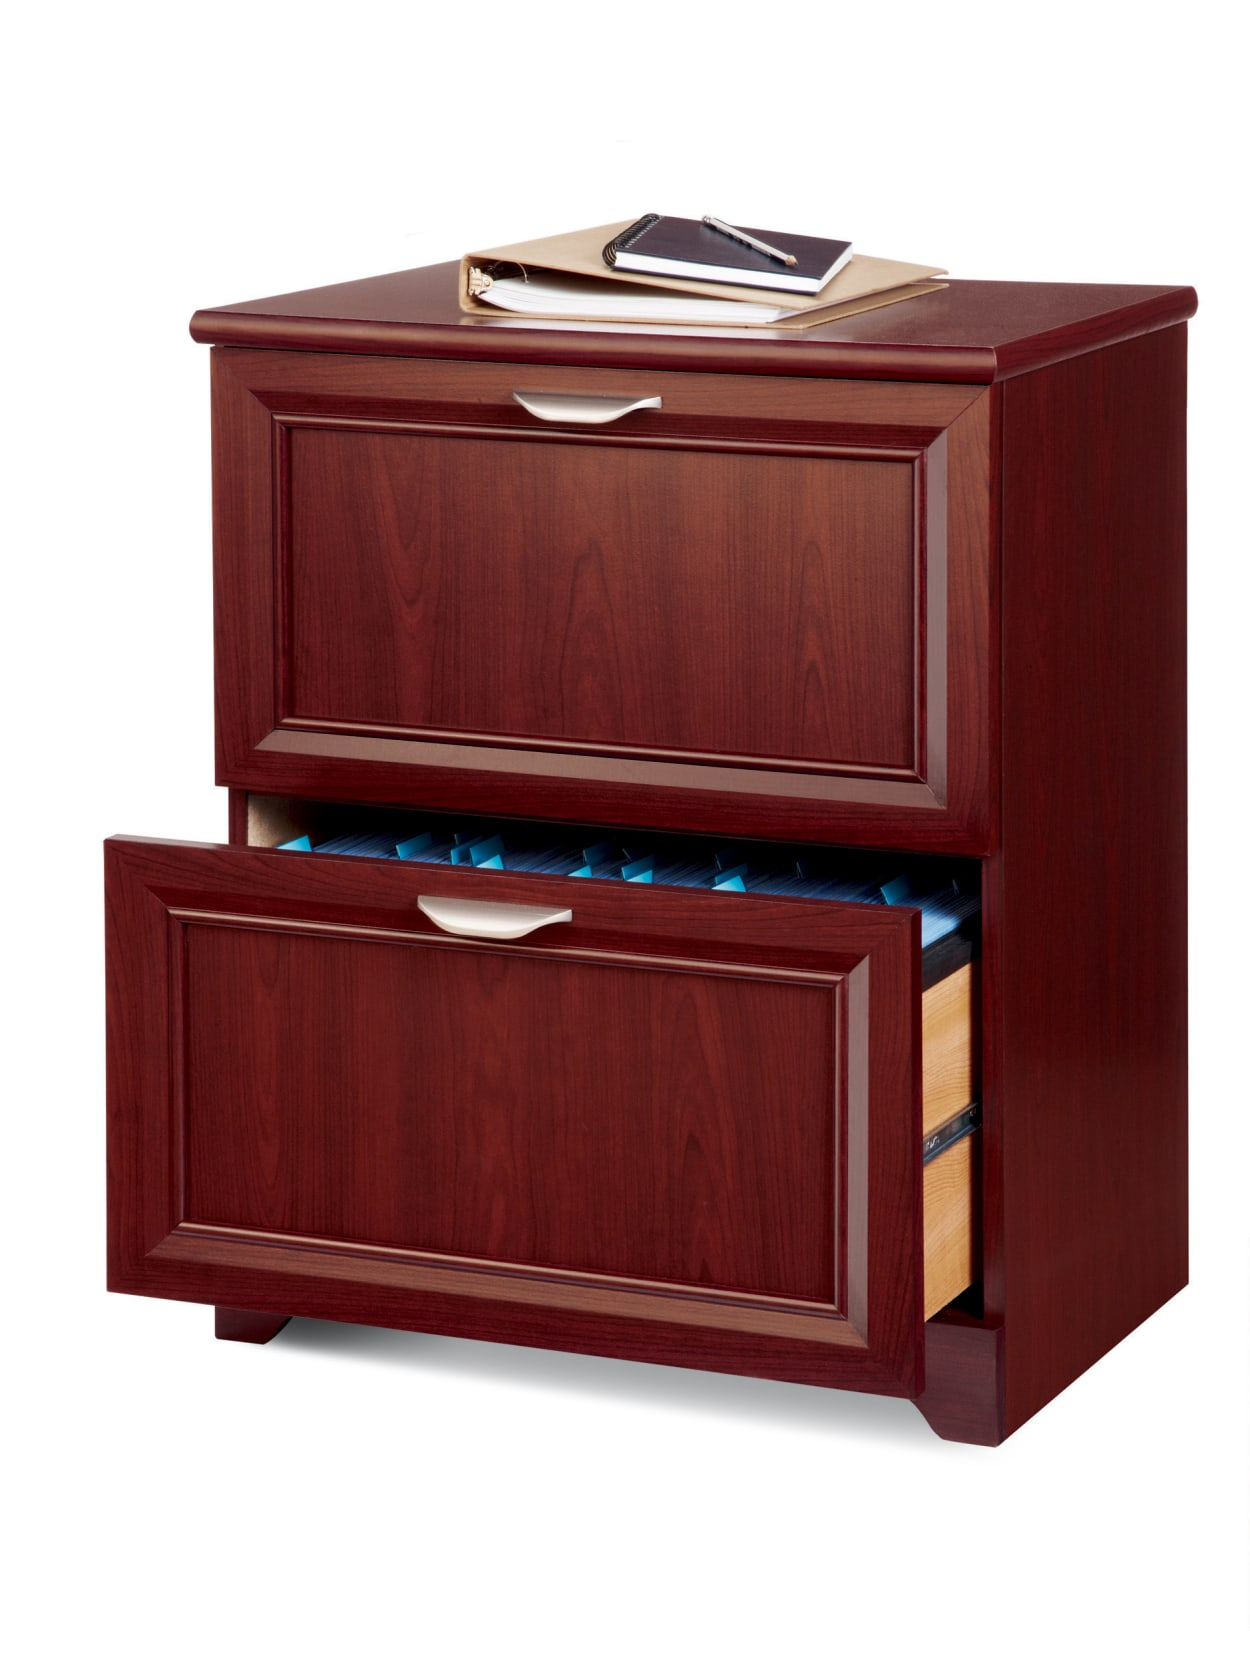 Picture of: Realspace Magellan 2 Drawer Cabinet Cherry Office Depot